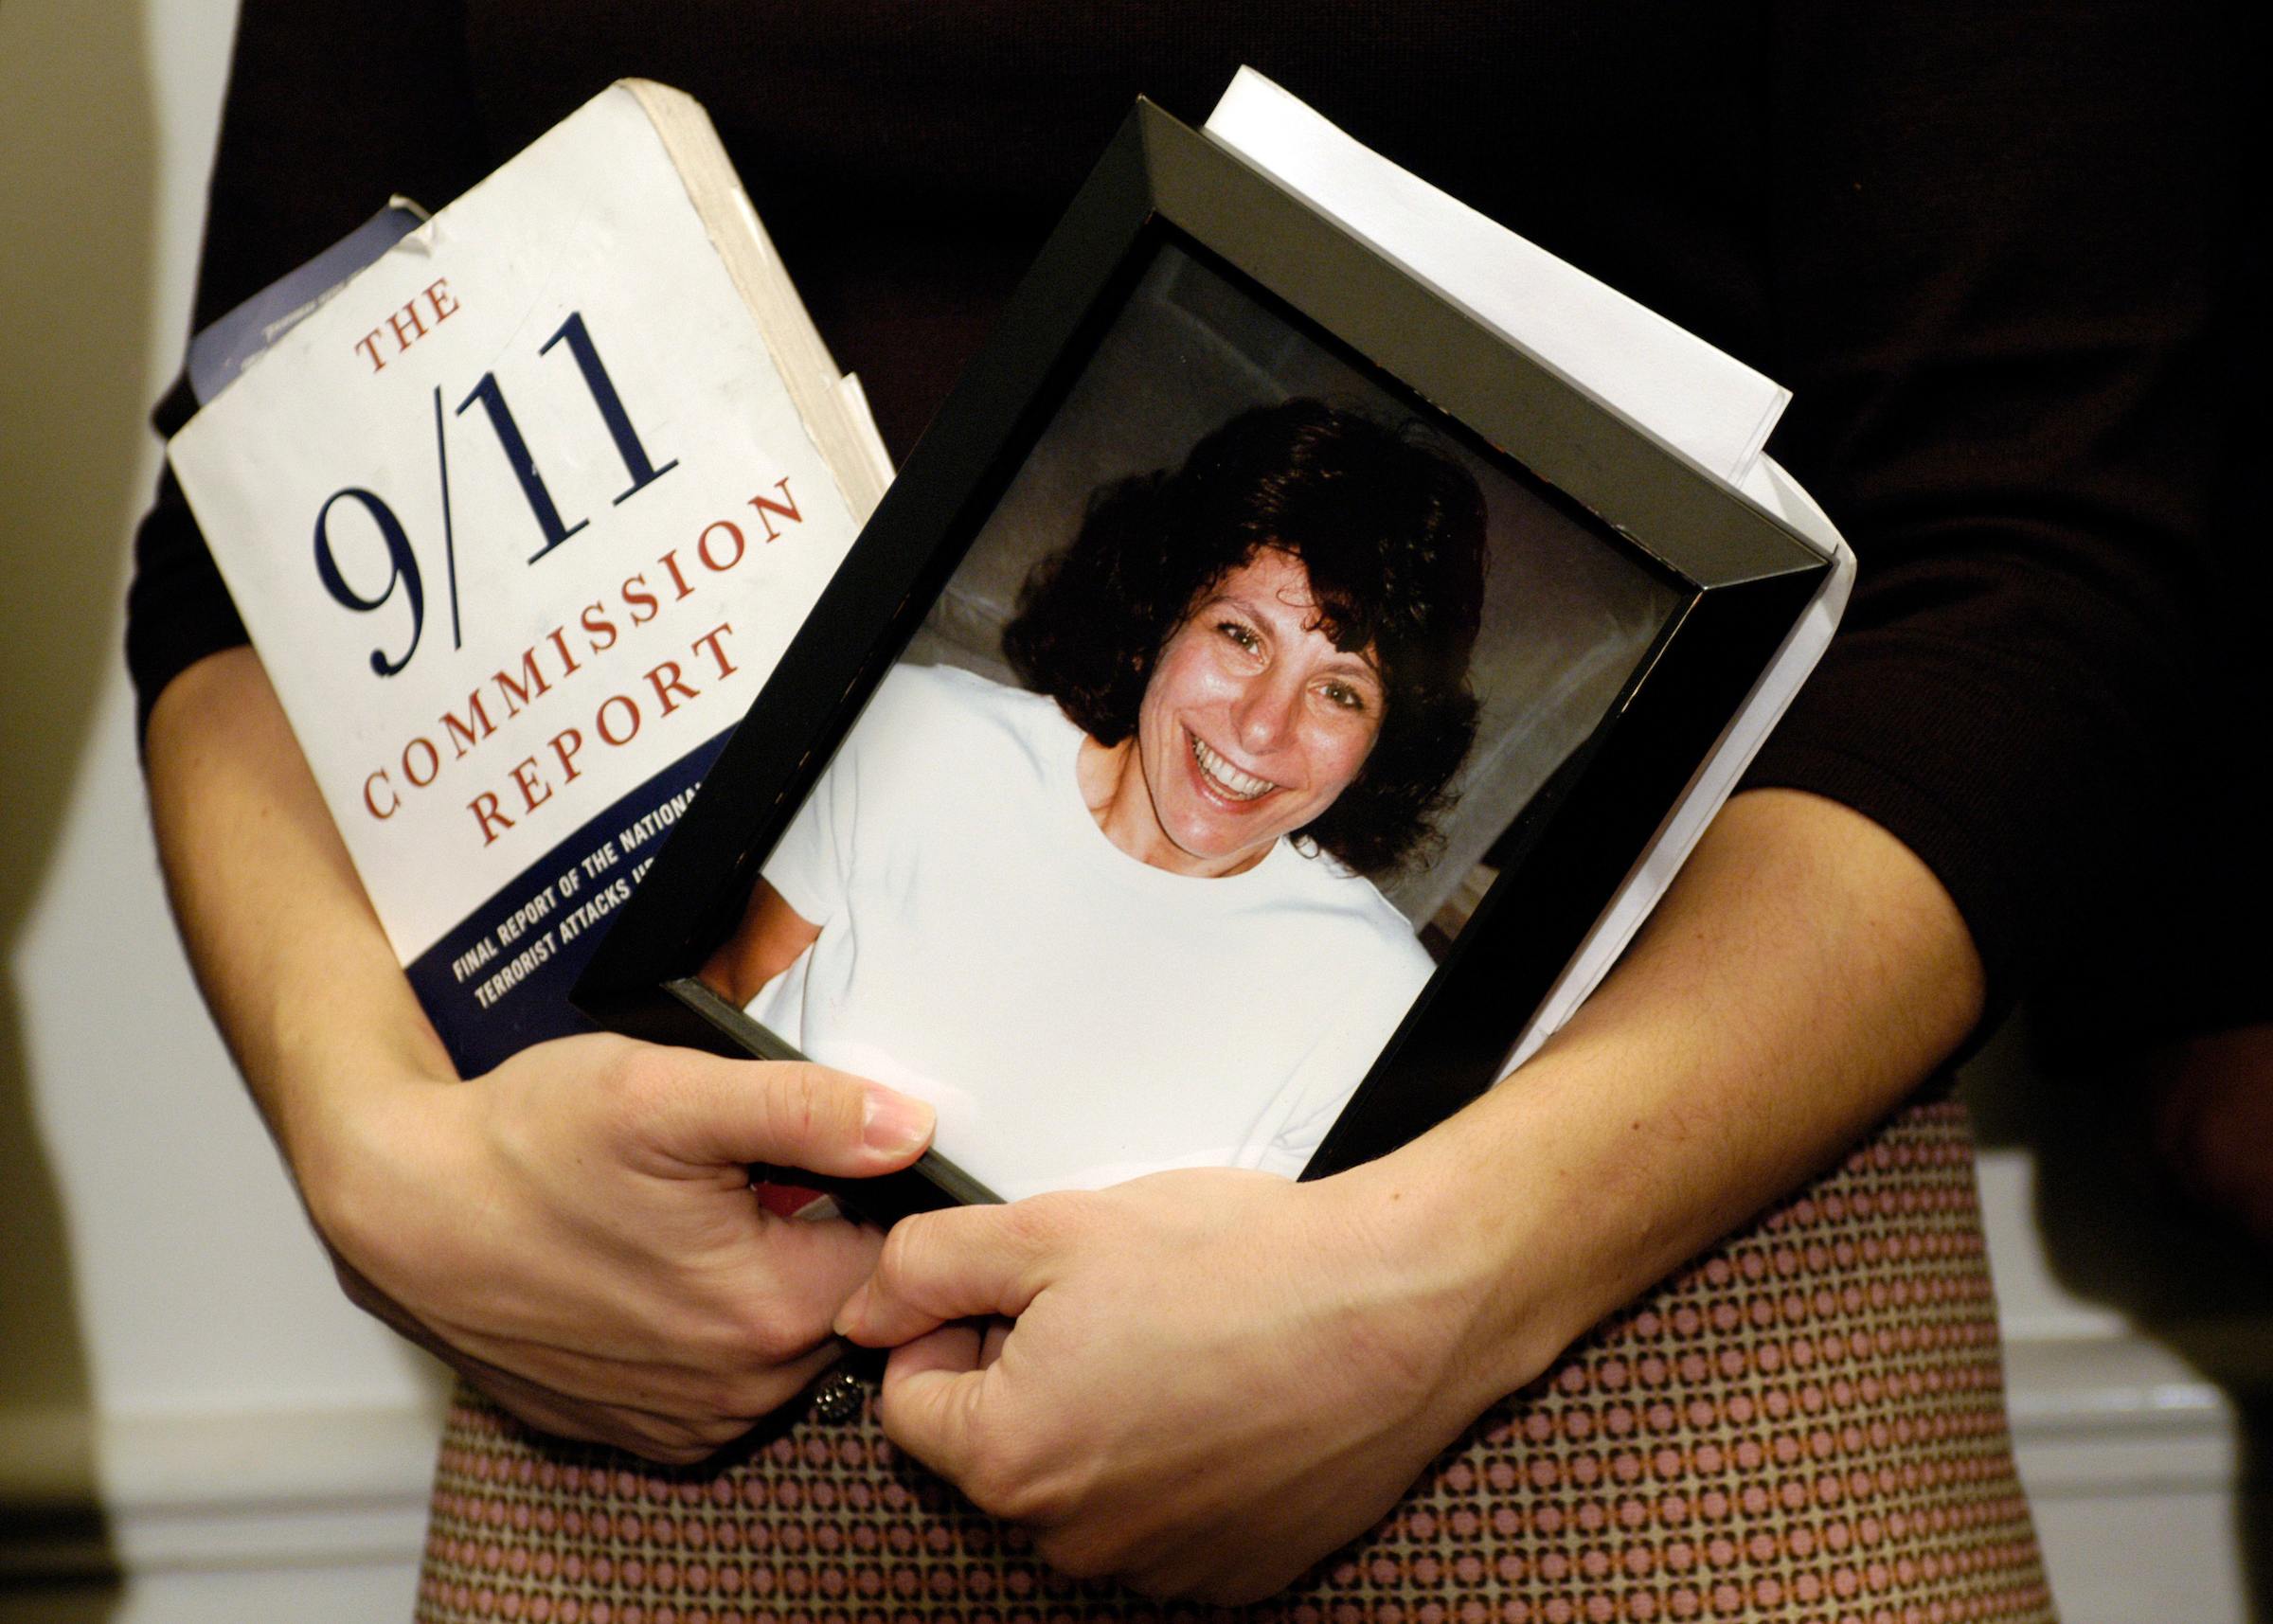 Carie LeMack, whose mother died in 9/11,held a copy of the 9/11 commssion report and a picture of her mother today at press conference urging Congressial committee reform recommended by the 9/11 commission.